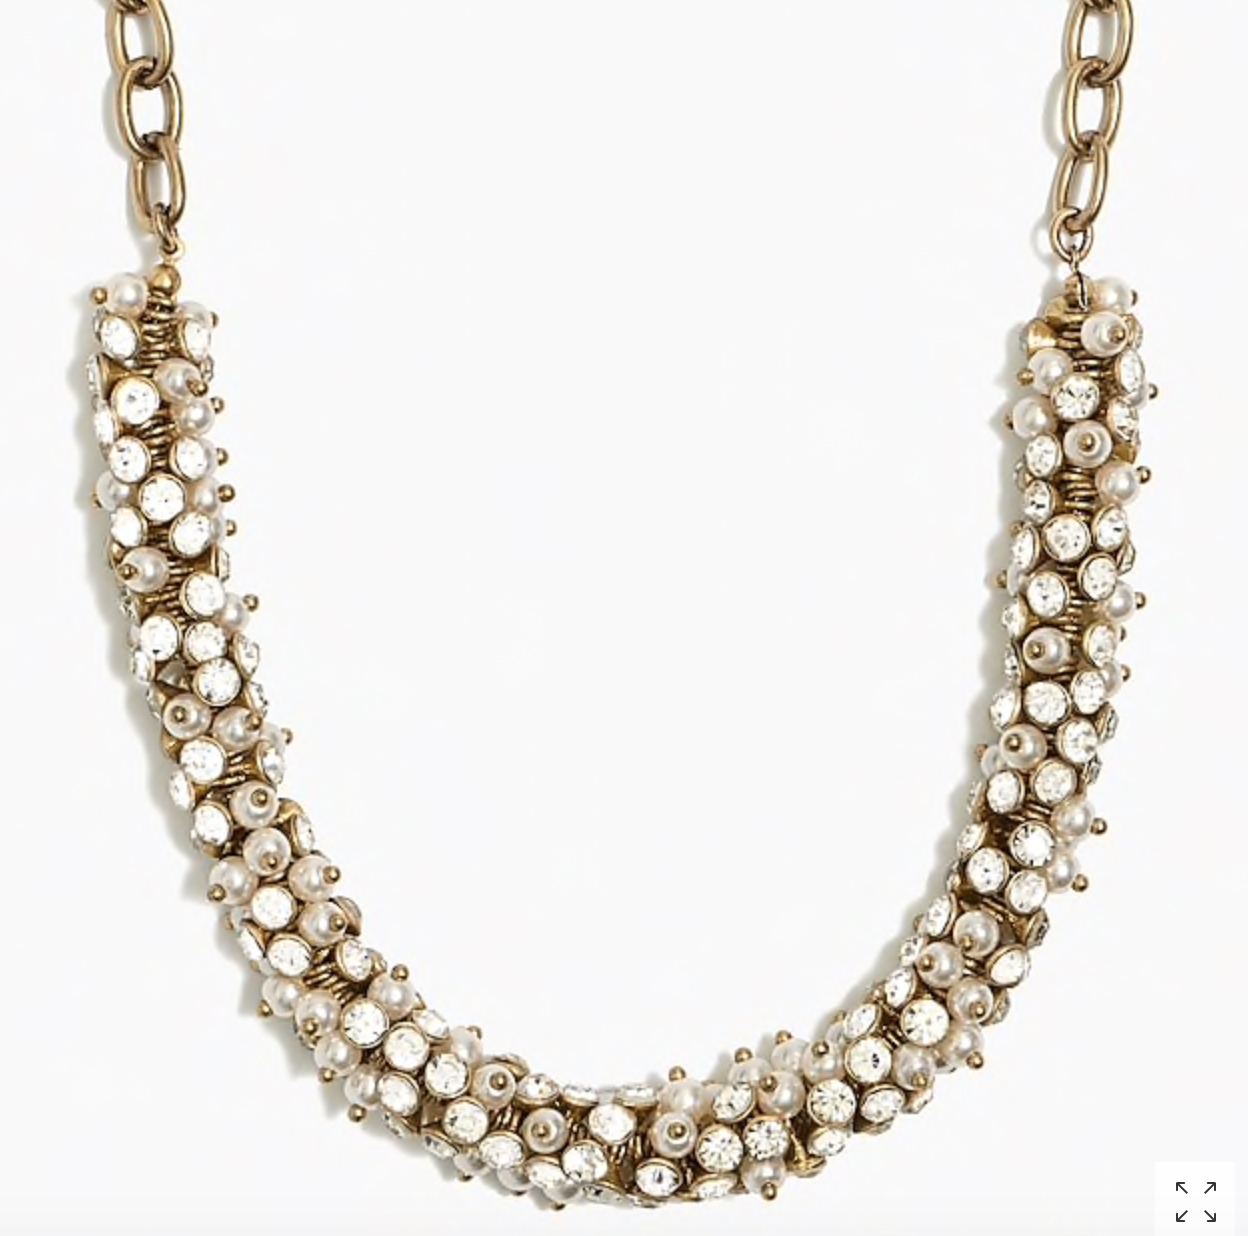 J.Crew Factory: Crystal Wreath Necklace